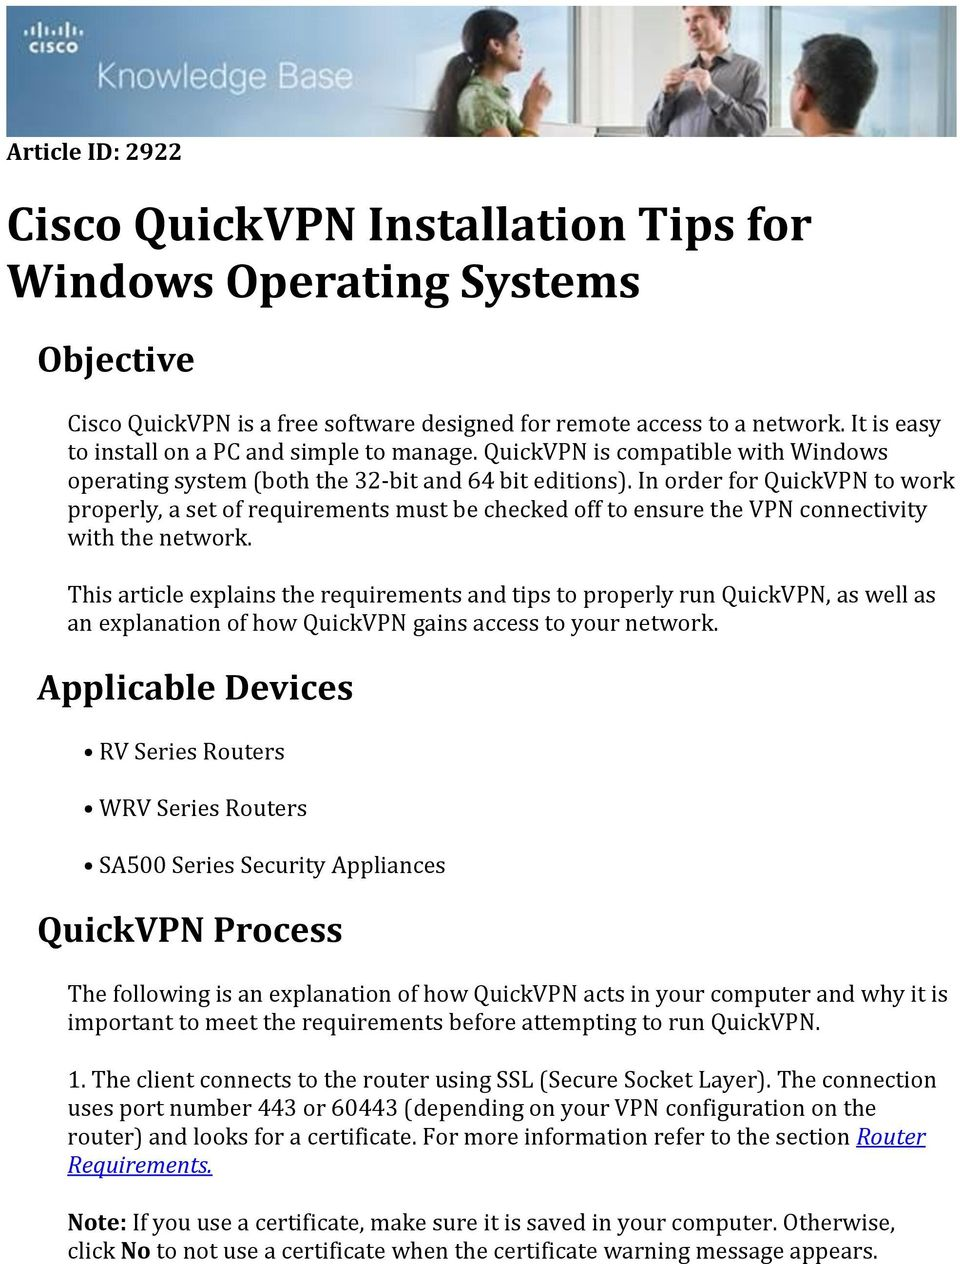 In order for QuickVPN to work properly, a set of requirements must be checked off to ensure the VPN connectivity with the network.